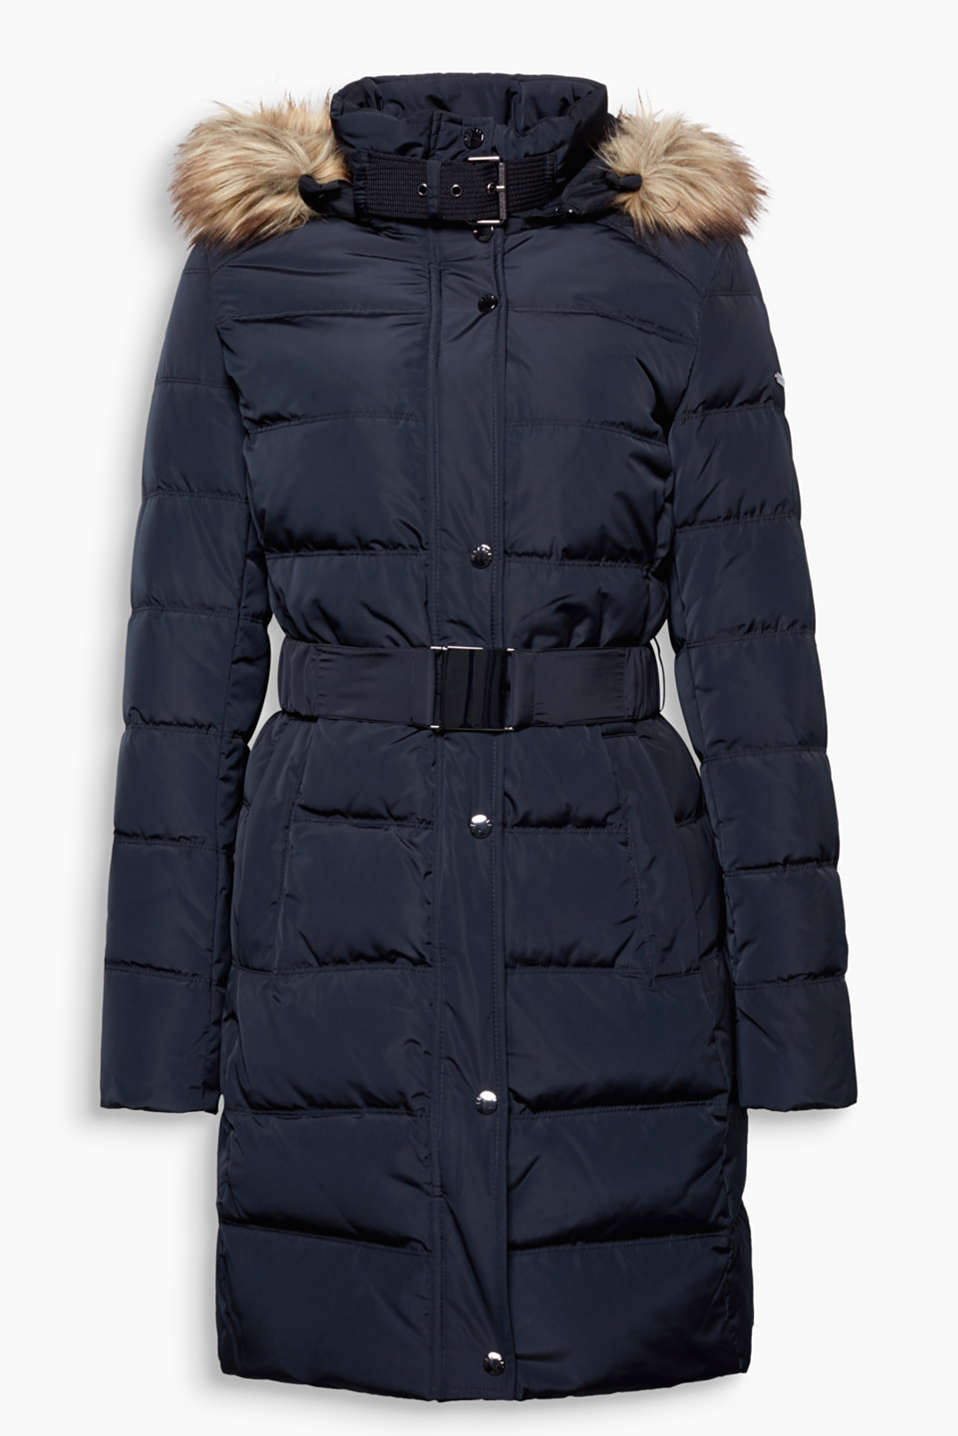 Functional and feminine: maxi-coat with an RDS-certified down/feather filling and detachable faux-fur hood.